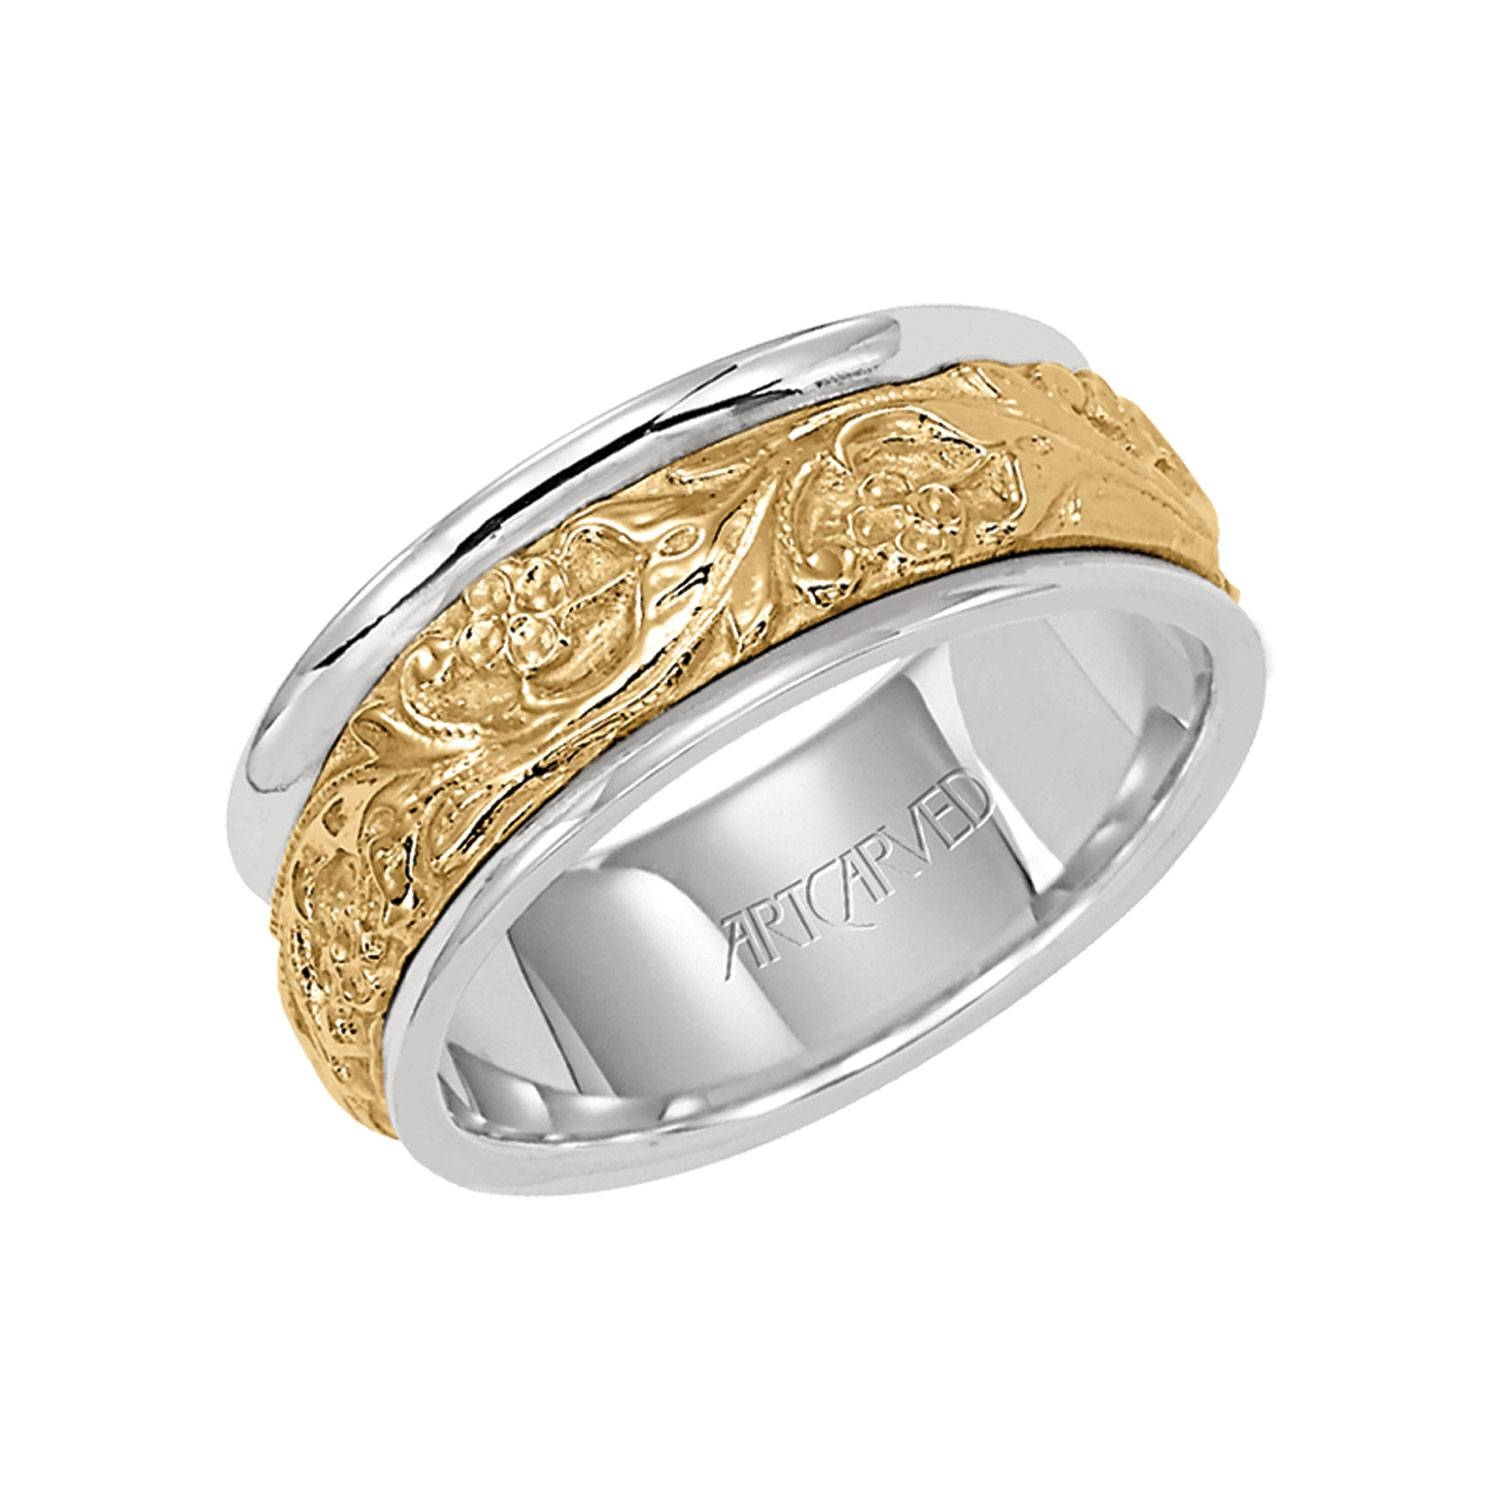 Men's Wedding Bands | Ben Bridge Jeweler Inside Art Carved Wedding Bands (View 12 of 15)